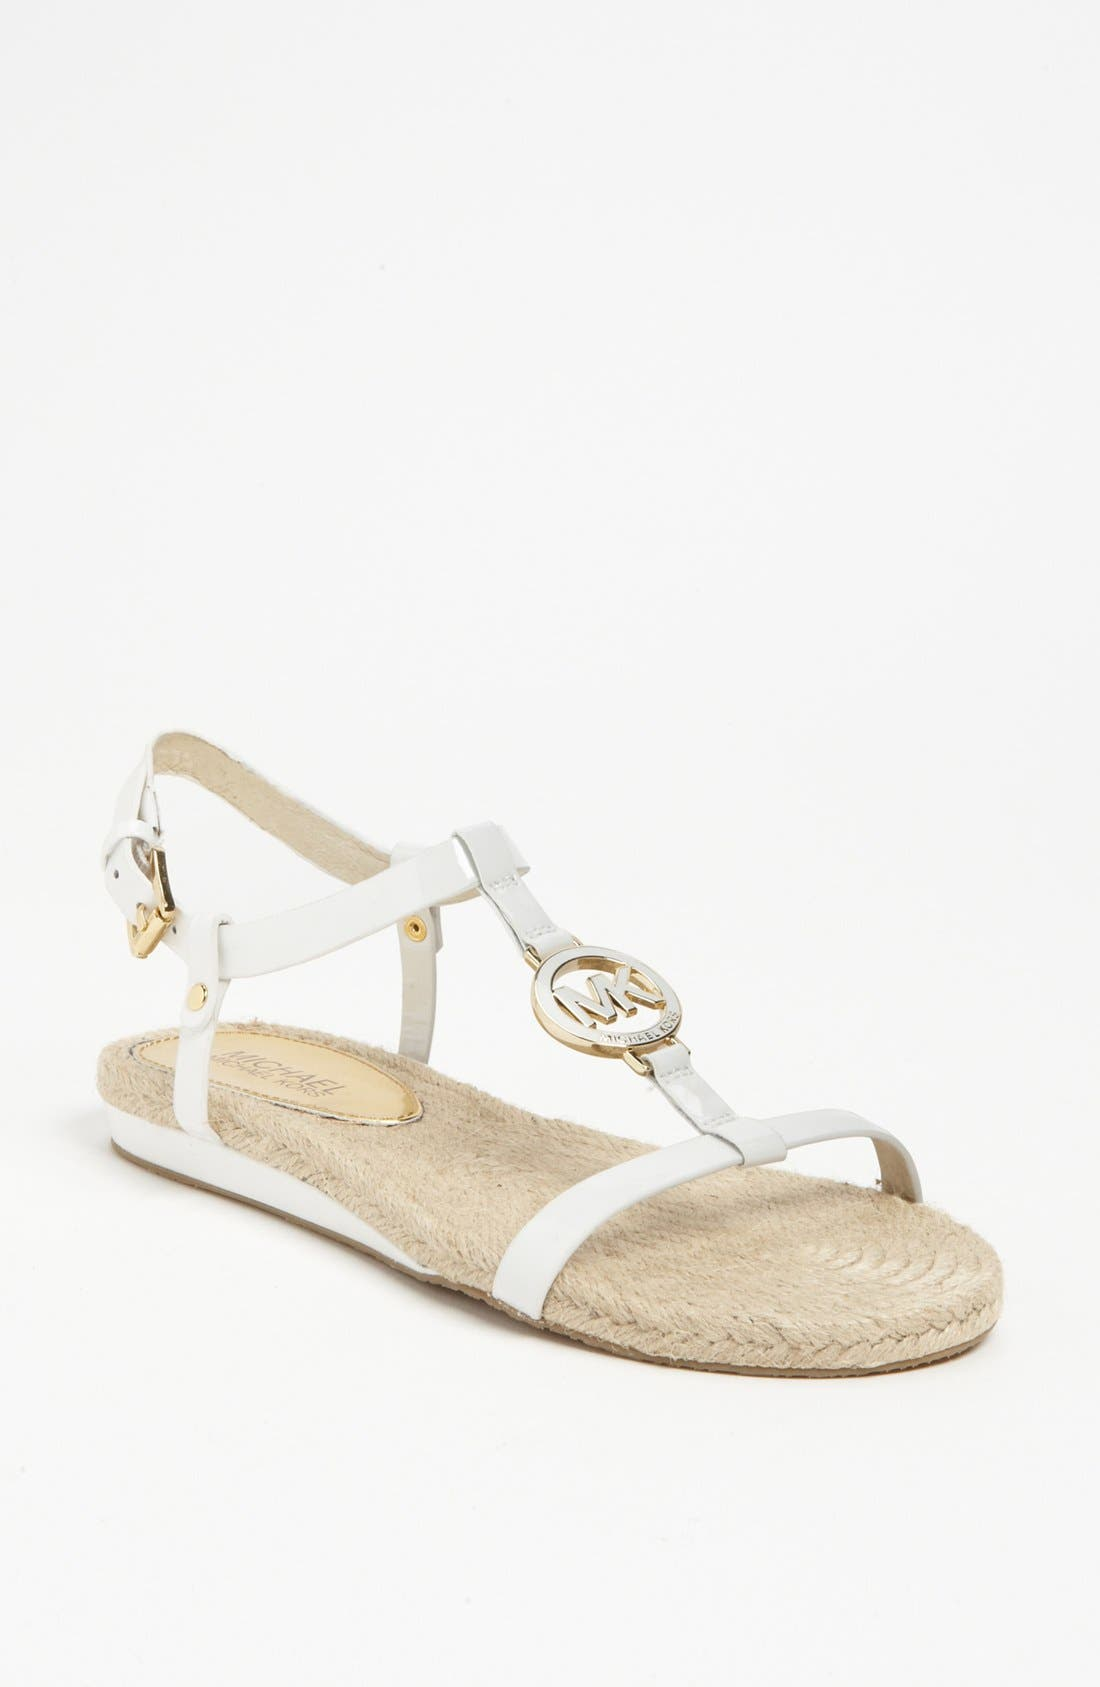 Alternate Image 1 Selected - MICHAEL Michael Kors 'Hope' Sandal